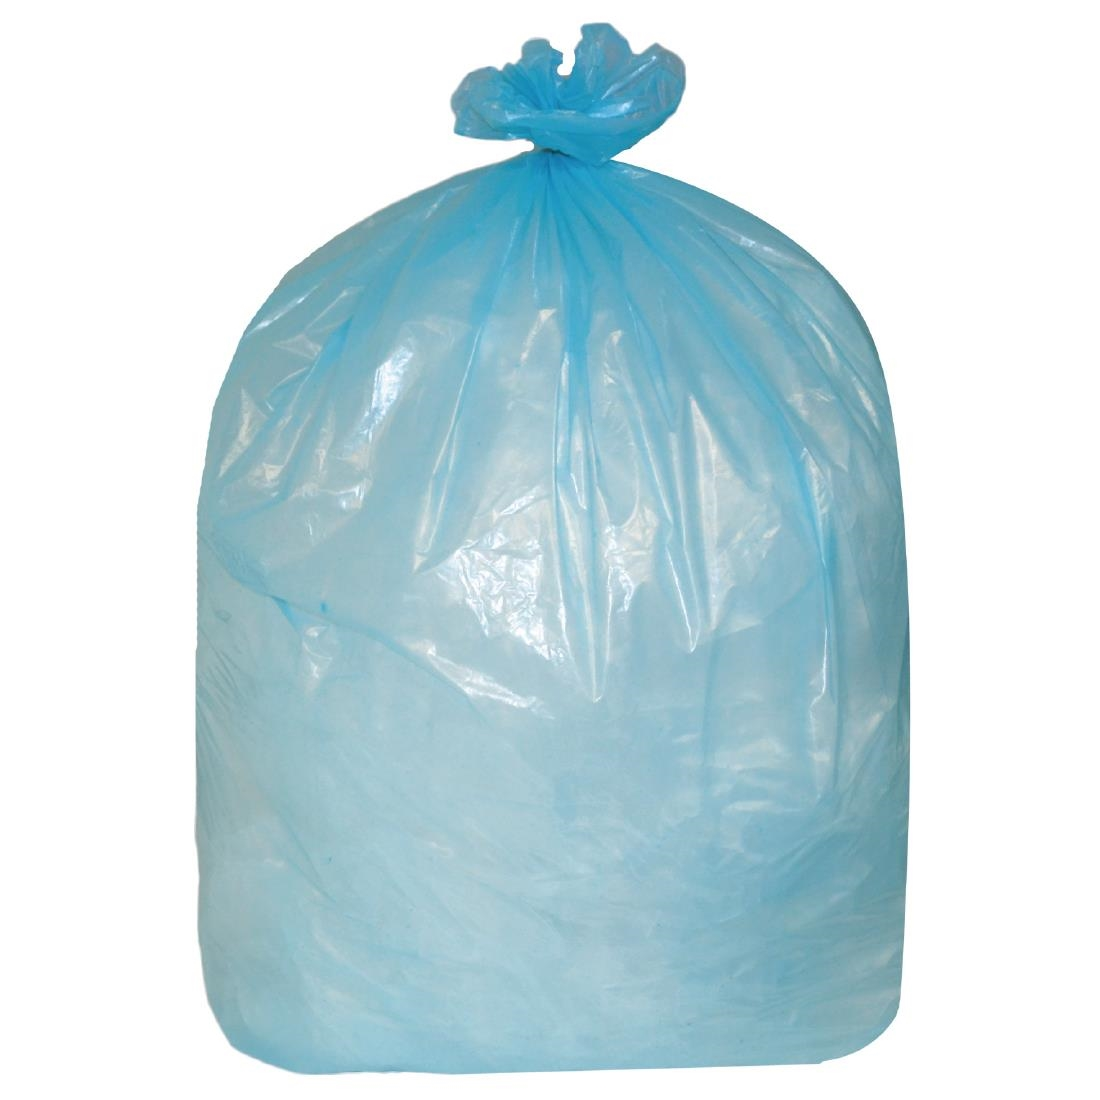 Image of Jantex Large Medium Duty Blue Bin Bags 90Ltr (Pack of 200) Pack of 200